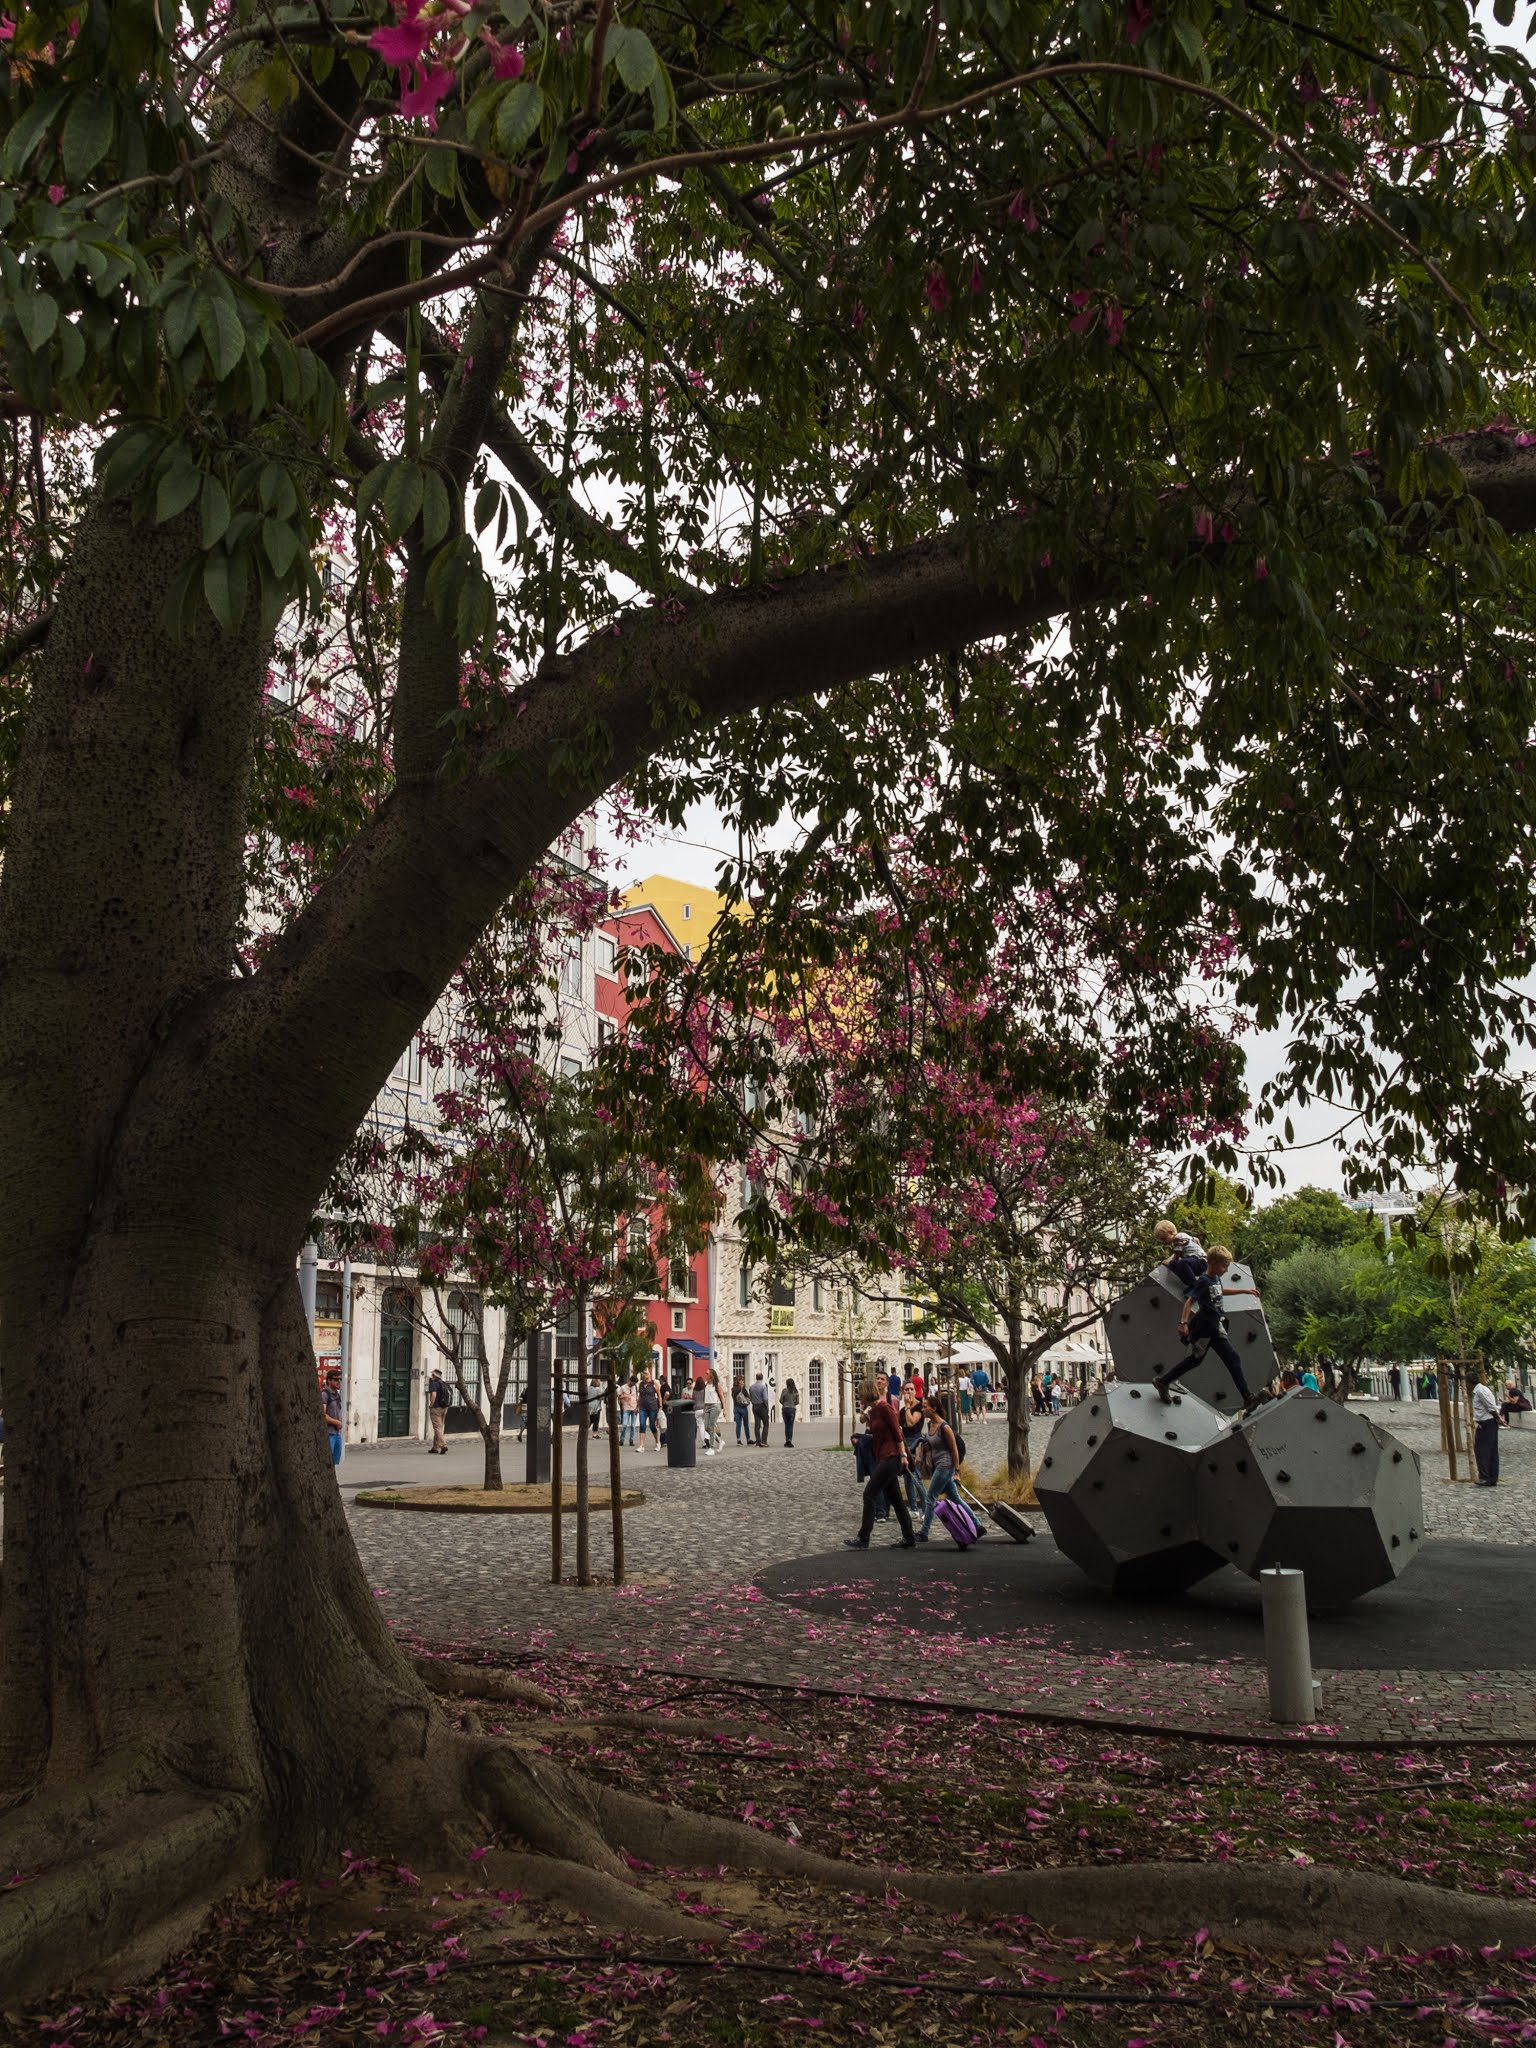 Roots and pink fallen petals under a flowering orchid tree in Lisbon, Portugal.